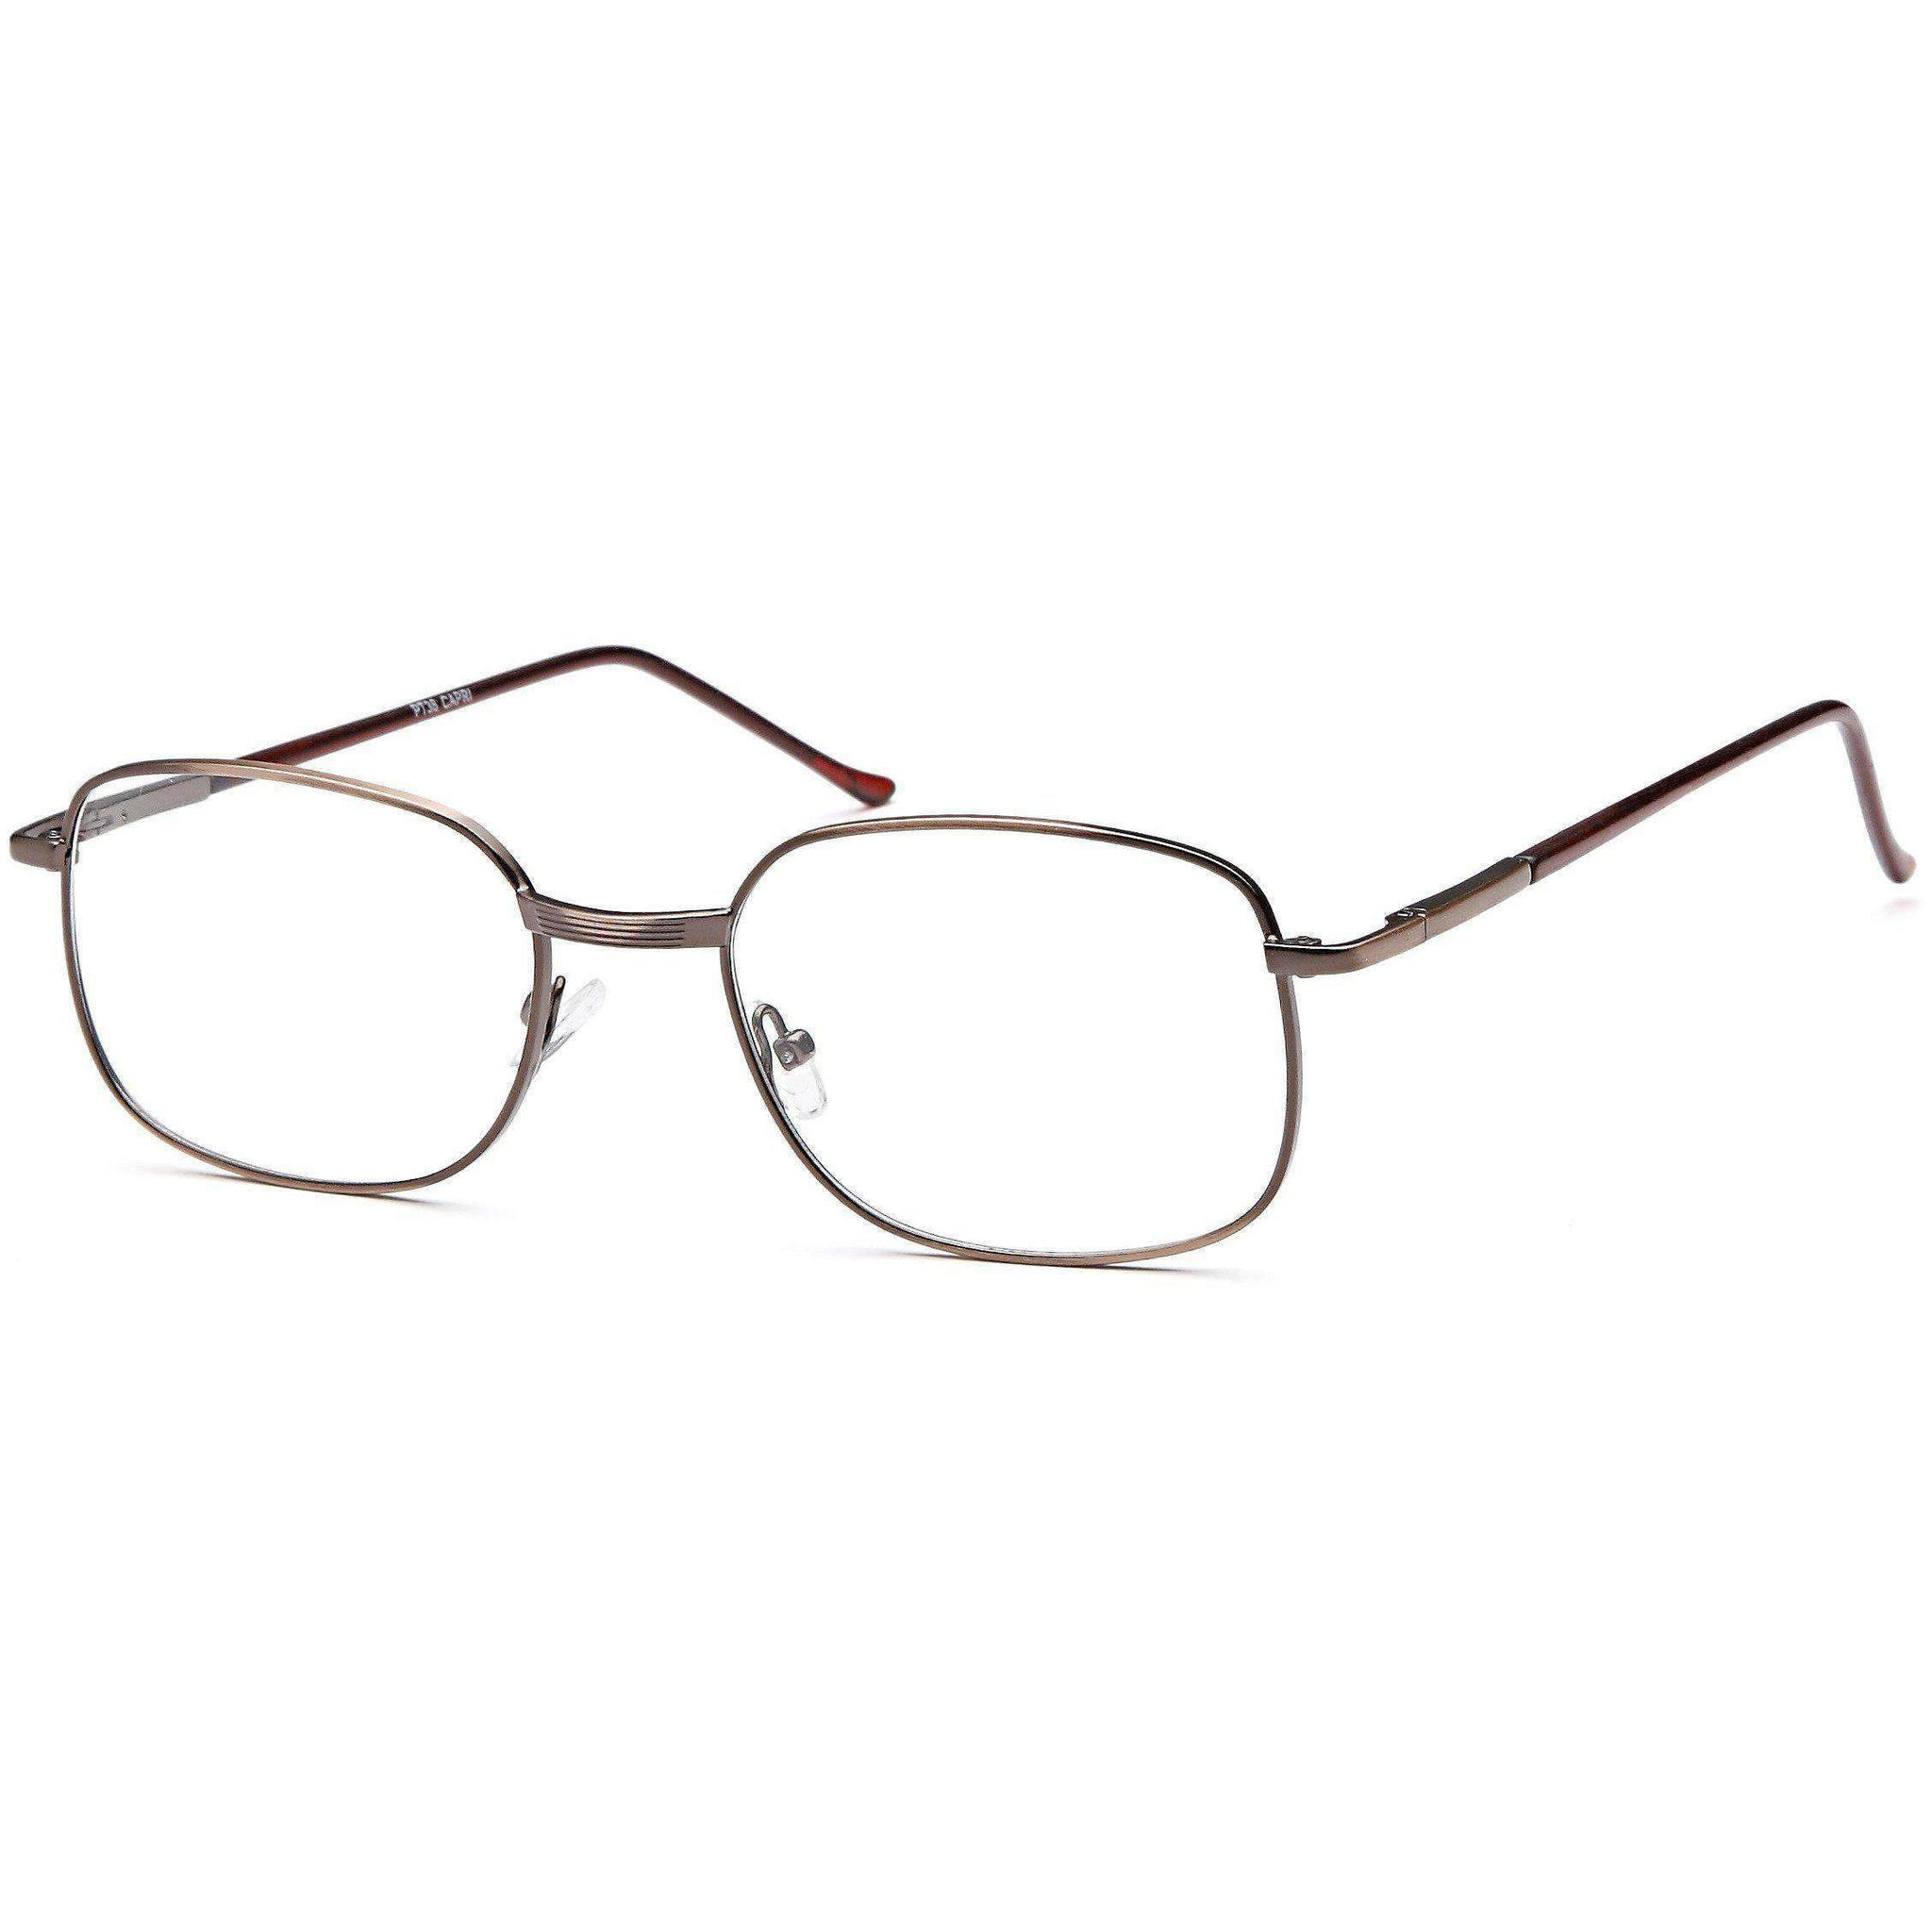 Appletree Prescription Glasses PT 36 Eyeglasses Frame